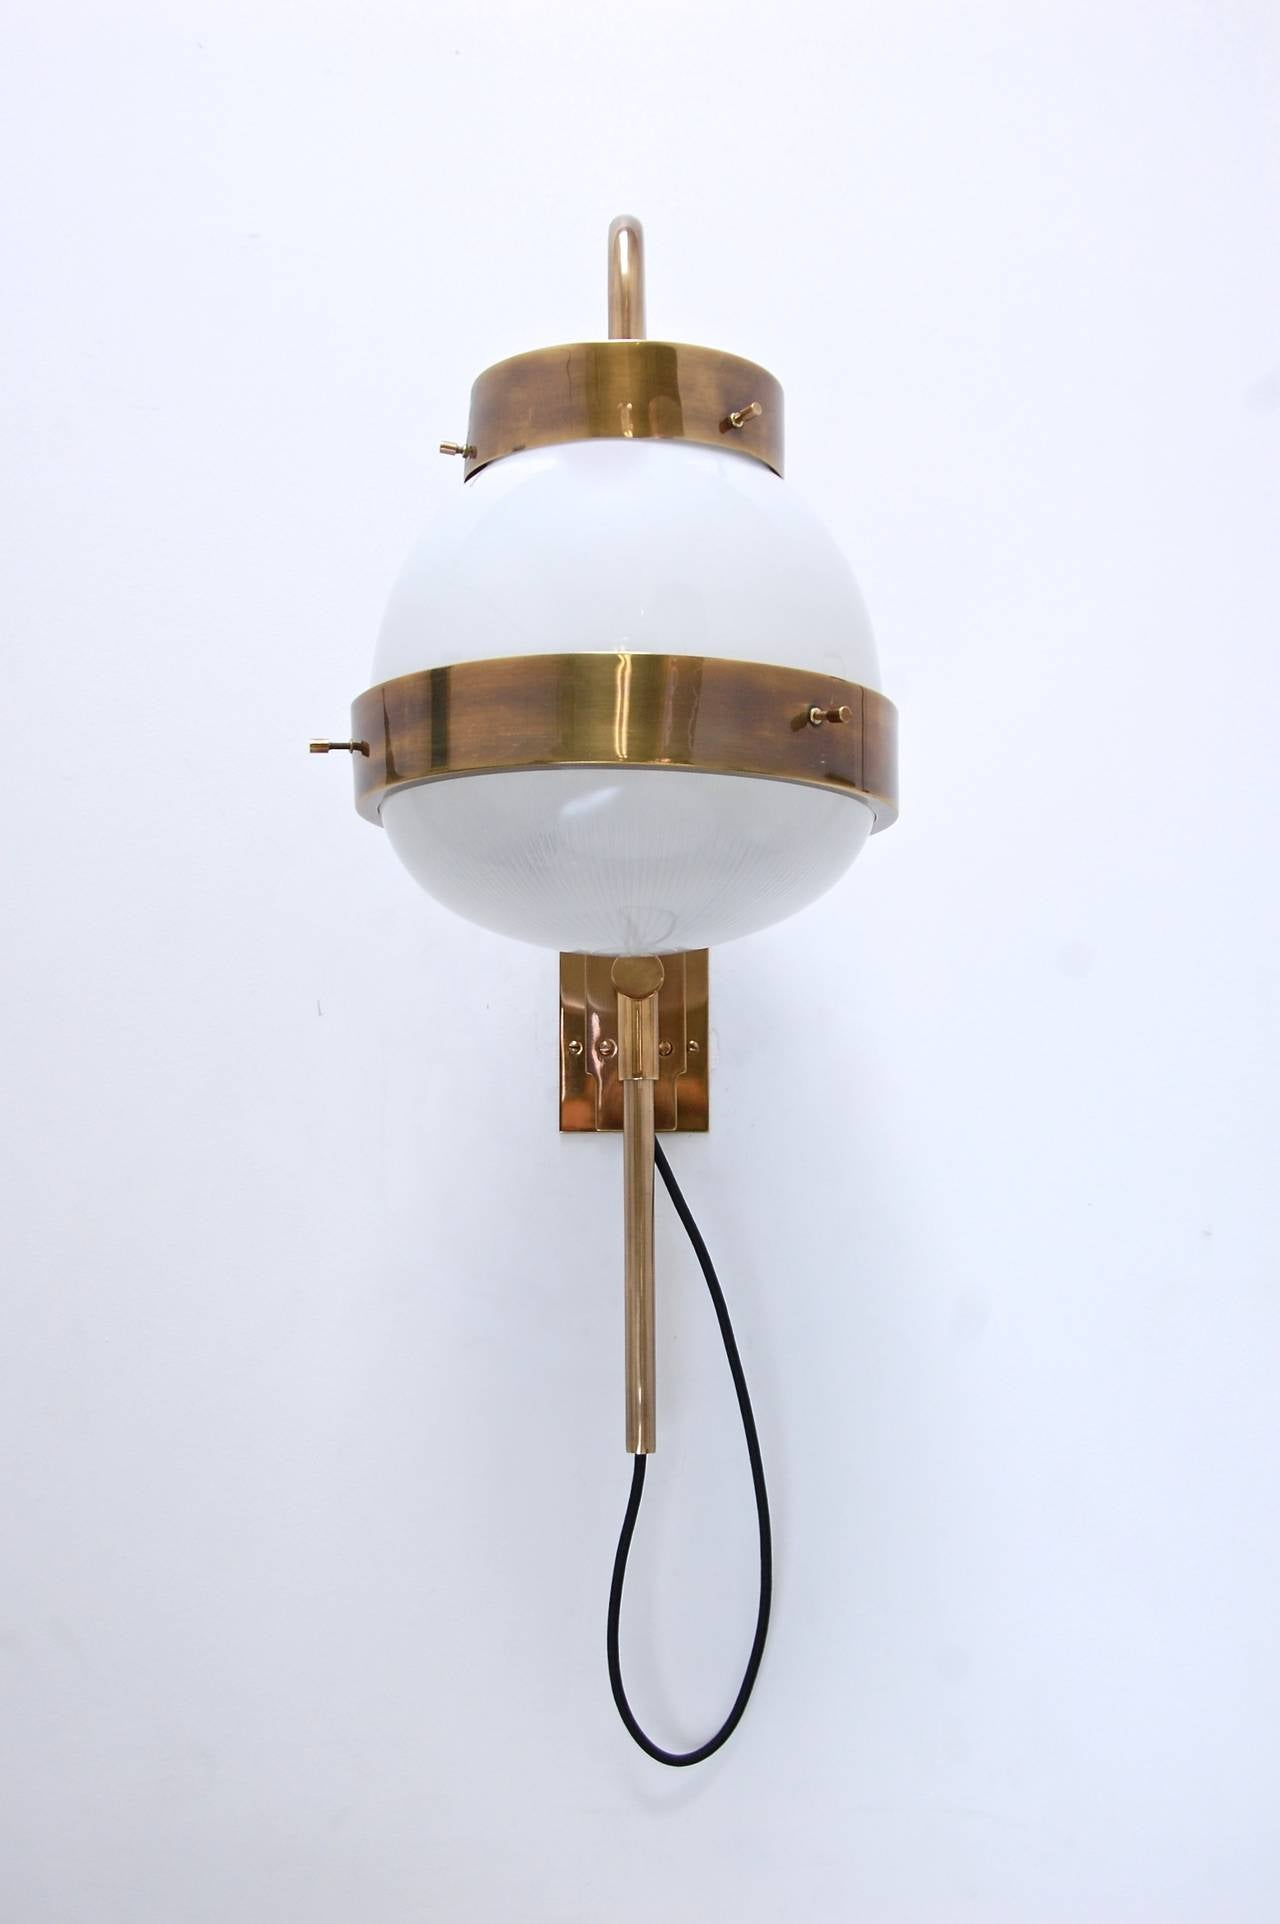 Delta Lighting Fixtures Delta Light Fixtures 1000 Images About Architecture Light Fixtures On